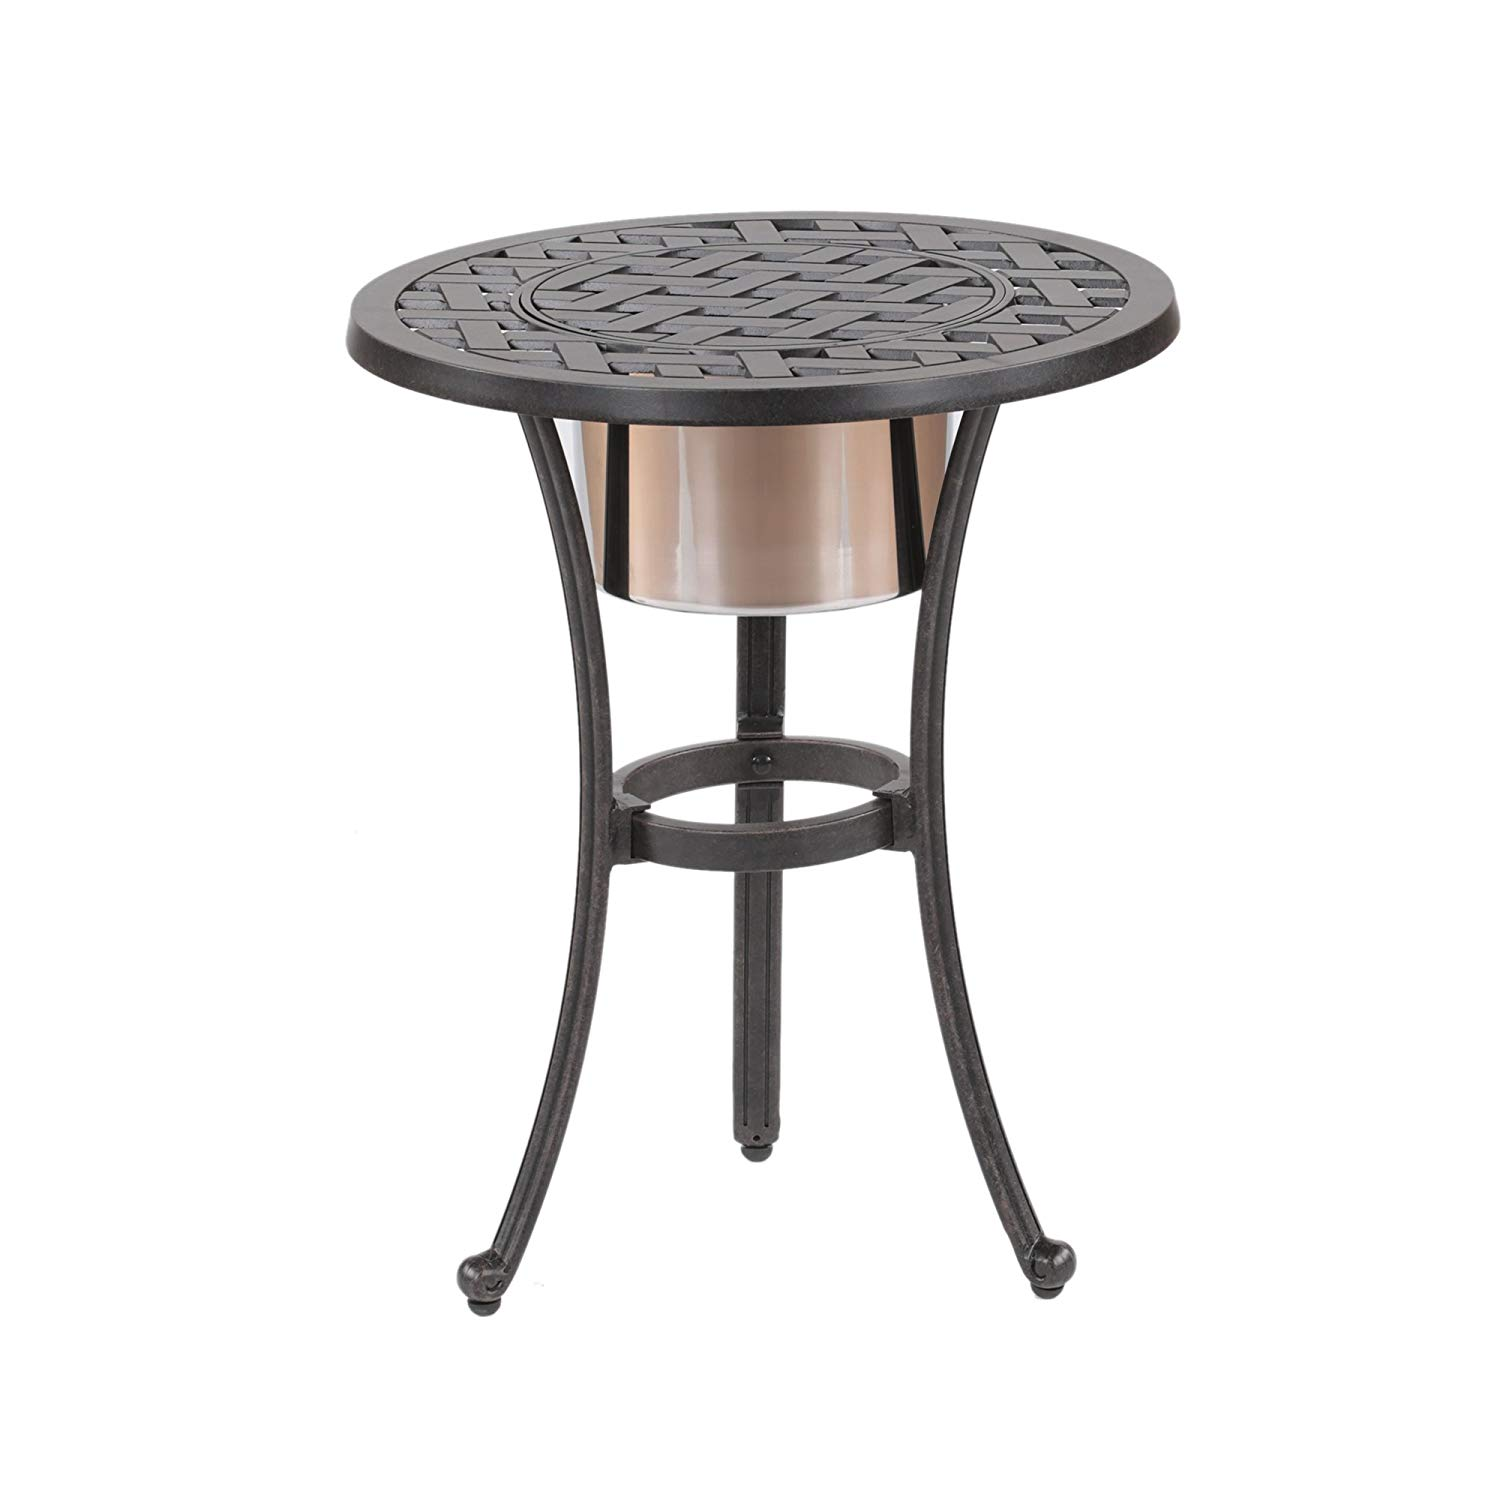 ipatio sparta inch round table with ice bucket outdoor side keep your drinks cool garden quilt modern nest coffee tables target ott end stands for living room console storage